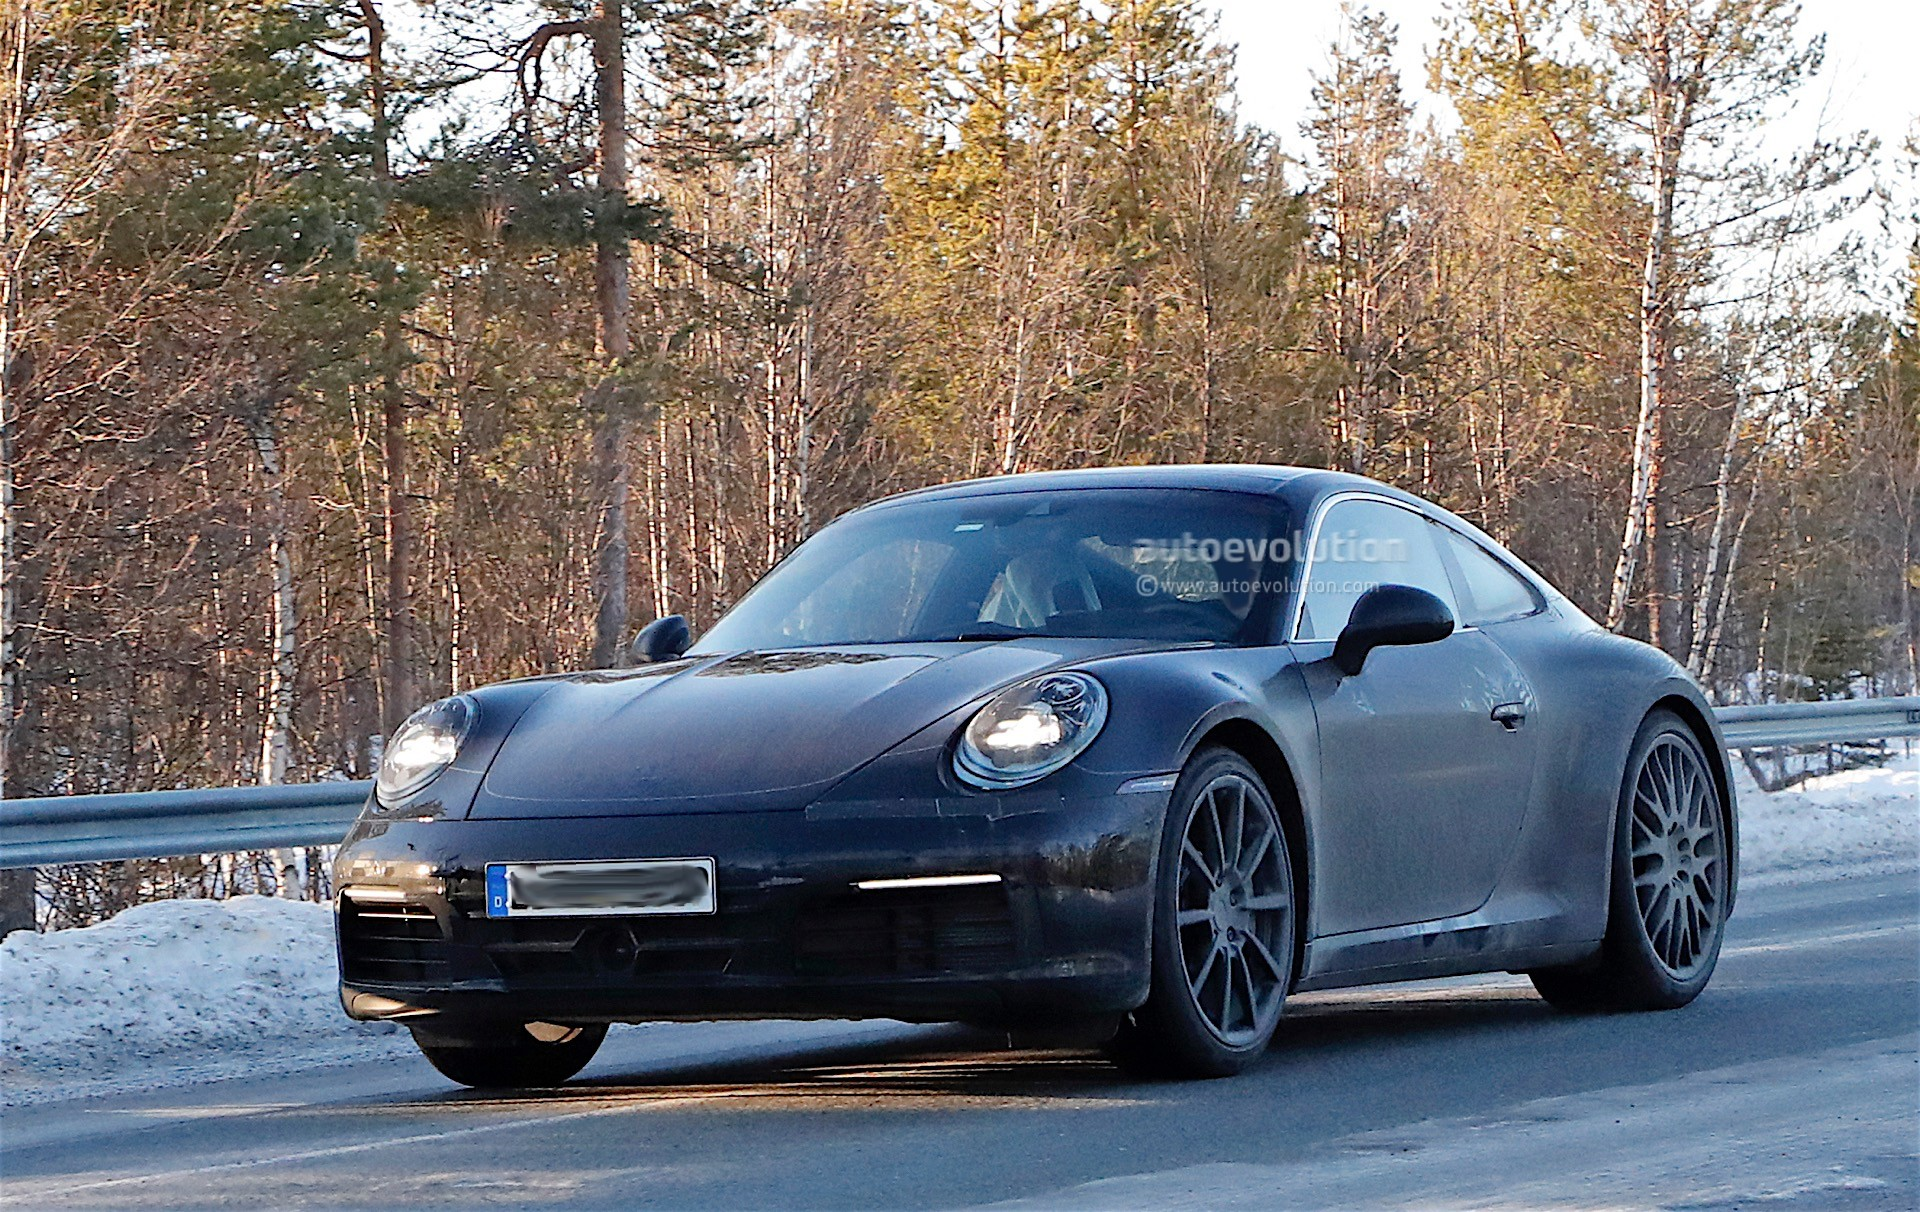 spy-photos-porsche-911-992-poses-with-the-spoiler-down-1-and-2-of-12_1